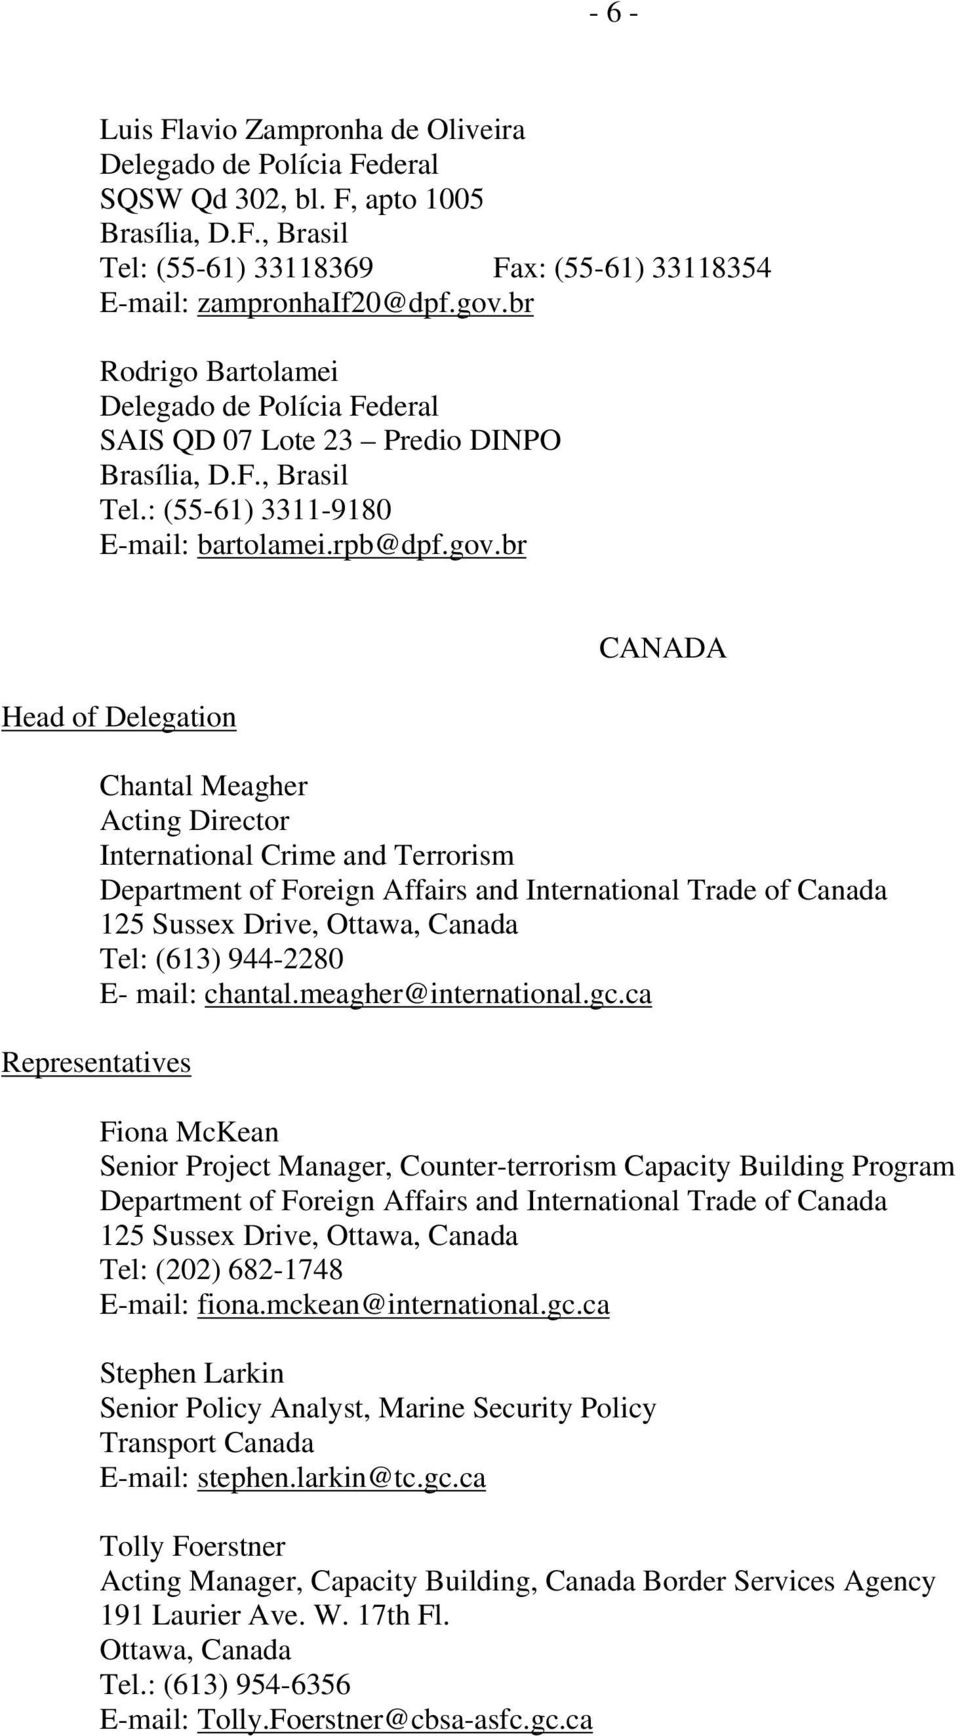 br Head of Delegation CANADA Chantal Meagher Acting Director International Crime and Terrorism Department of Foreign Affairs and International Trade of Canada 125 Sussex Drive, Ottawa, Canada Tel: